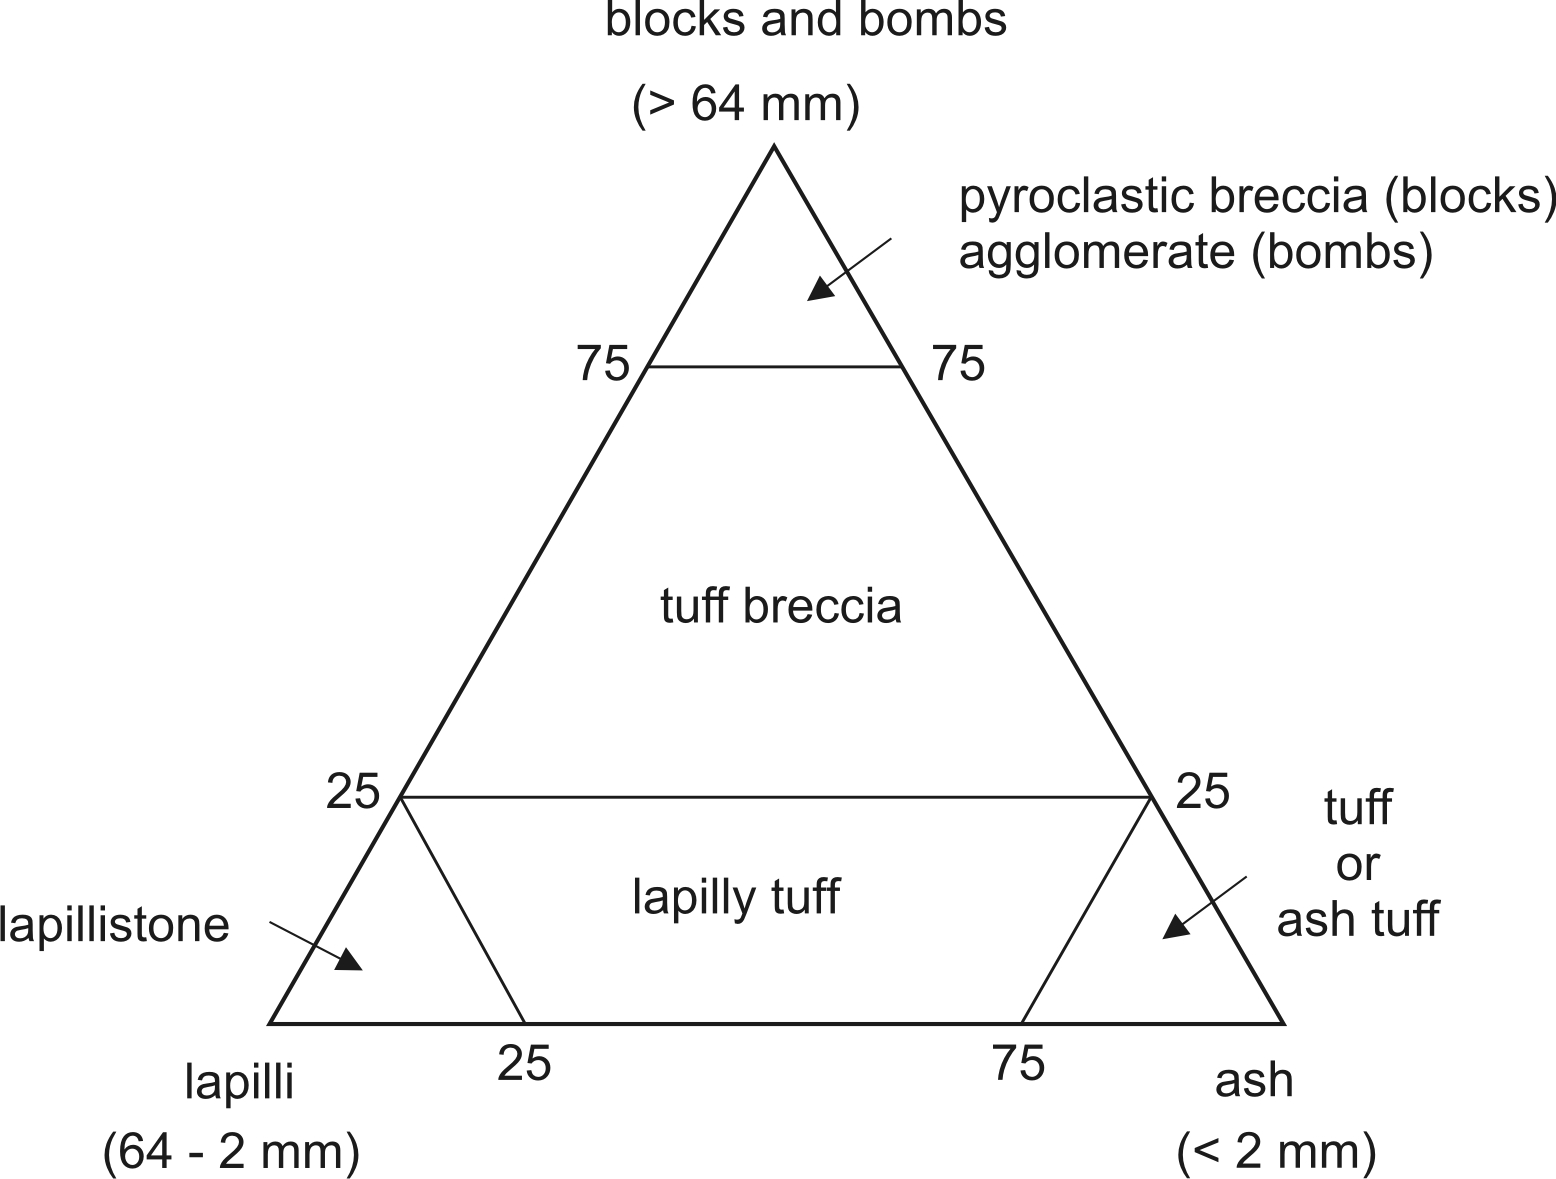 hight resolution of polymodal classification of pyroclastic volcanoclastic rocks based on proportional abundance of pyroclasts of different sizes after fisher 1966